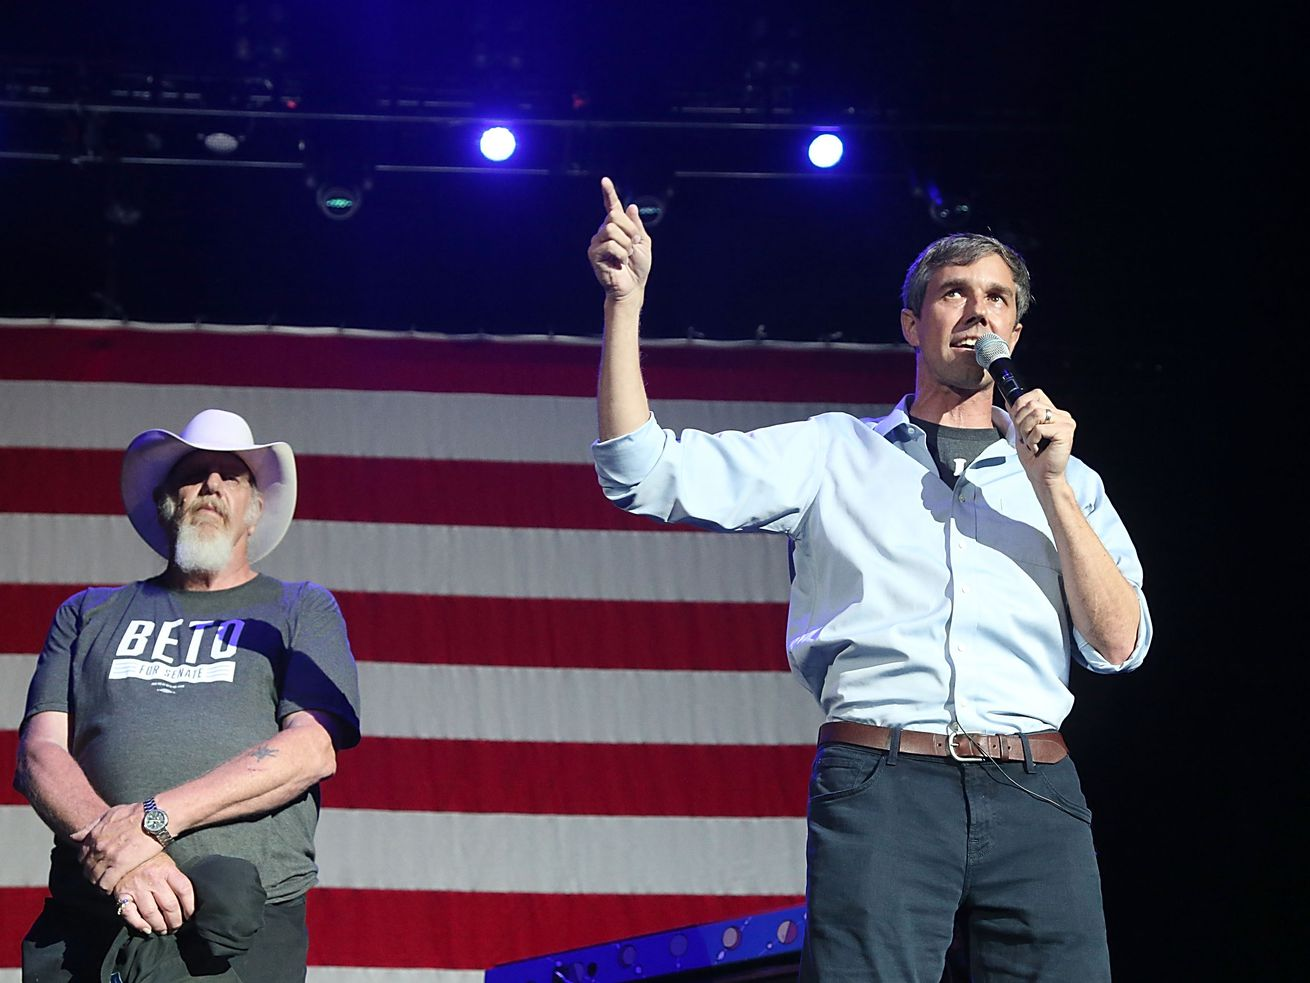 Texas Rep. Beto O'Rourke (right) speaking at a Senate campaign rally.